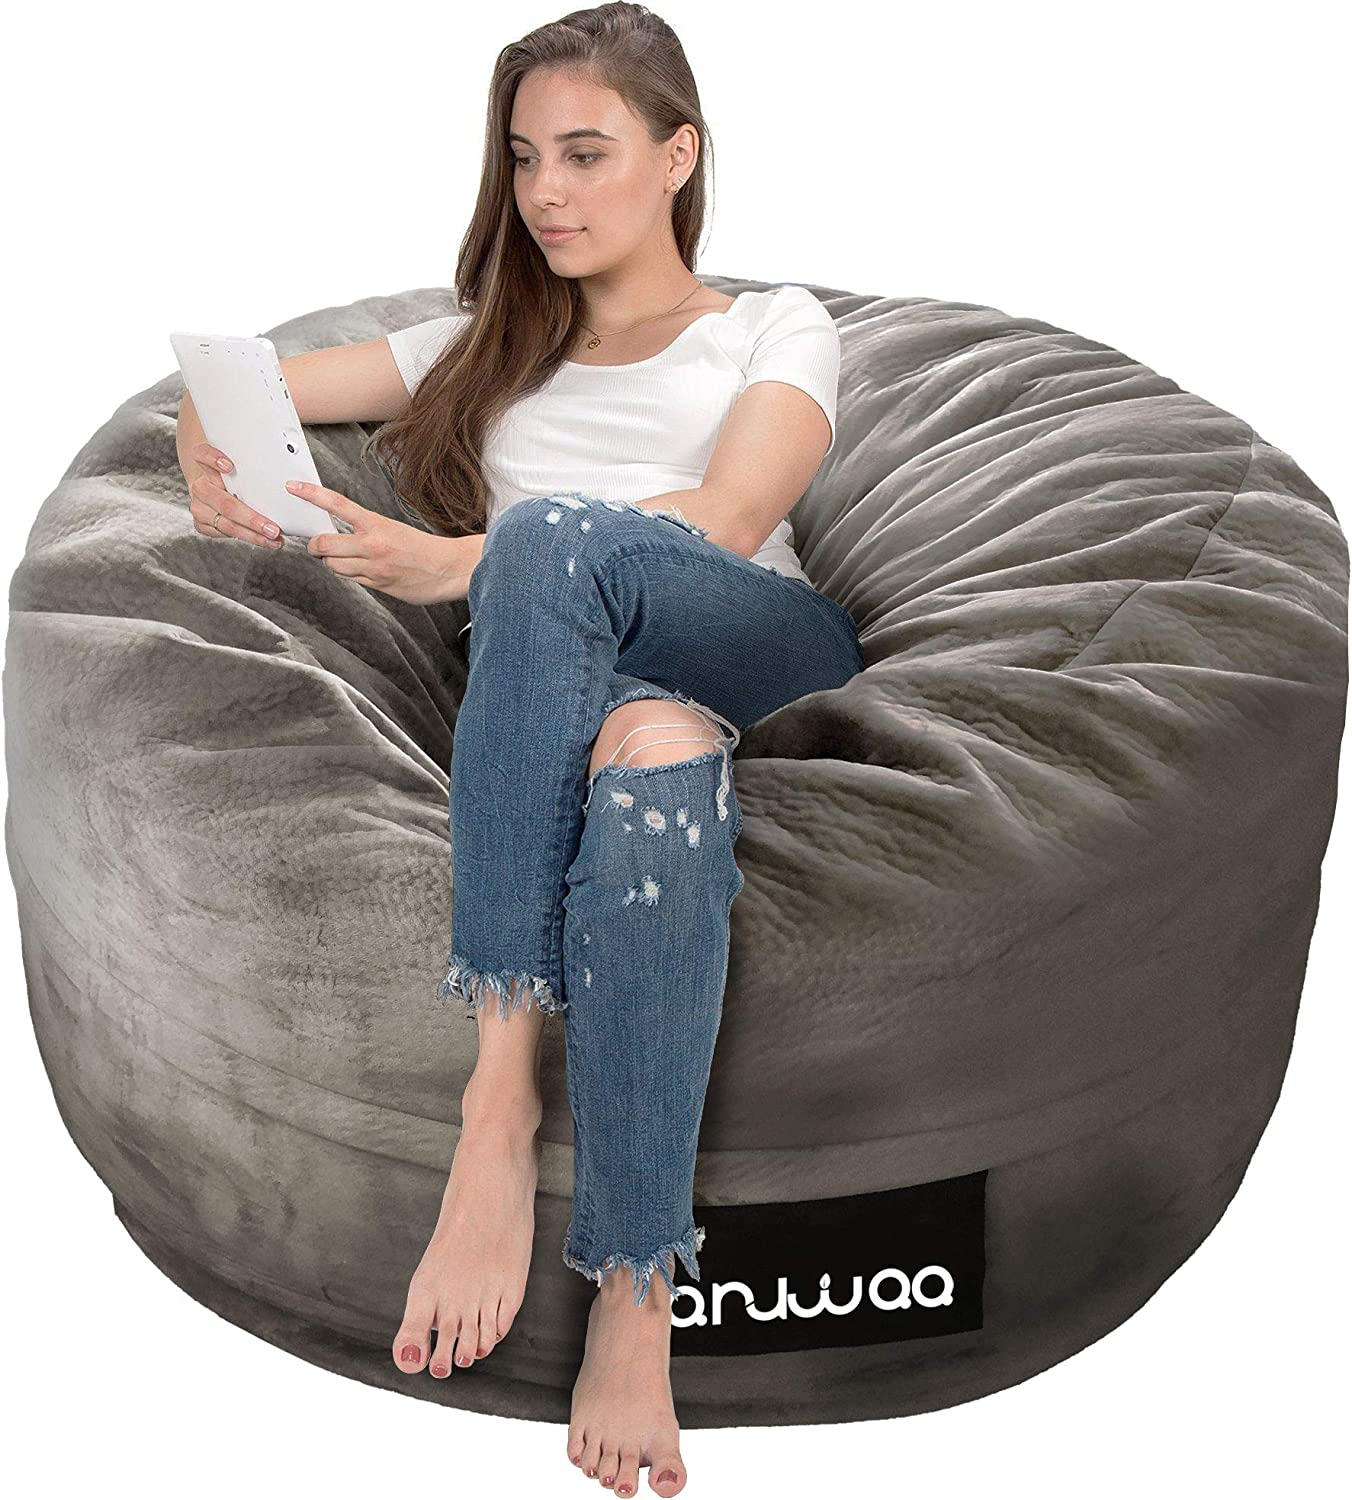 ANUWAA Bean Bag Chair, Giant 4' Memory Foam Bean Bag for Kids,Teens, Adults, Big Sofa with Fluffy Removable Microfiber Cover, Furnitures for Dorm Room and Living Room, Warm Grey